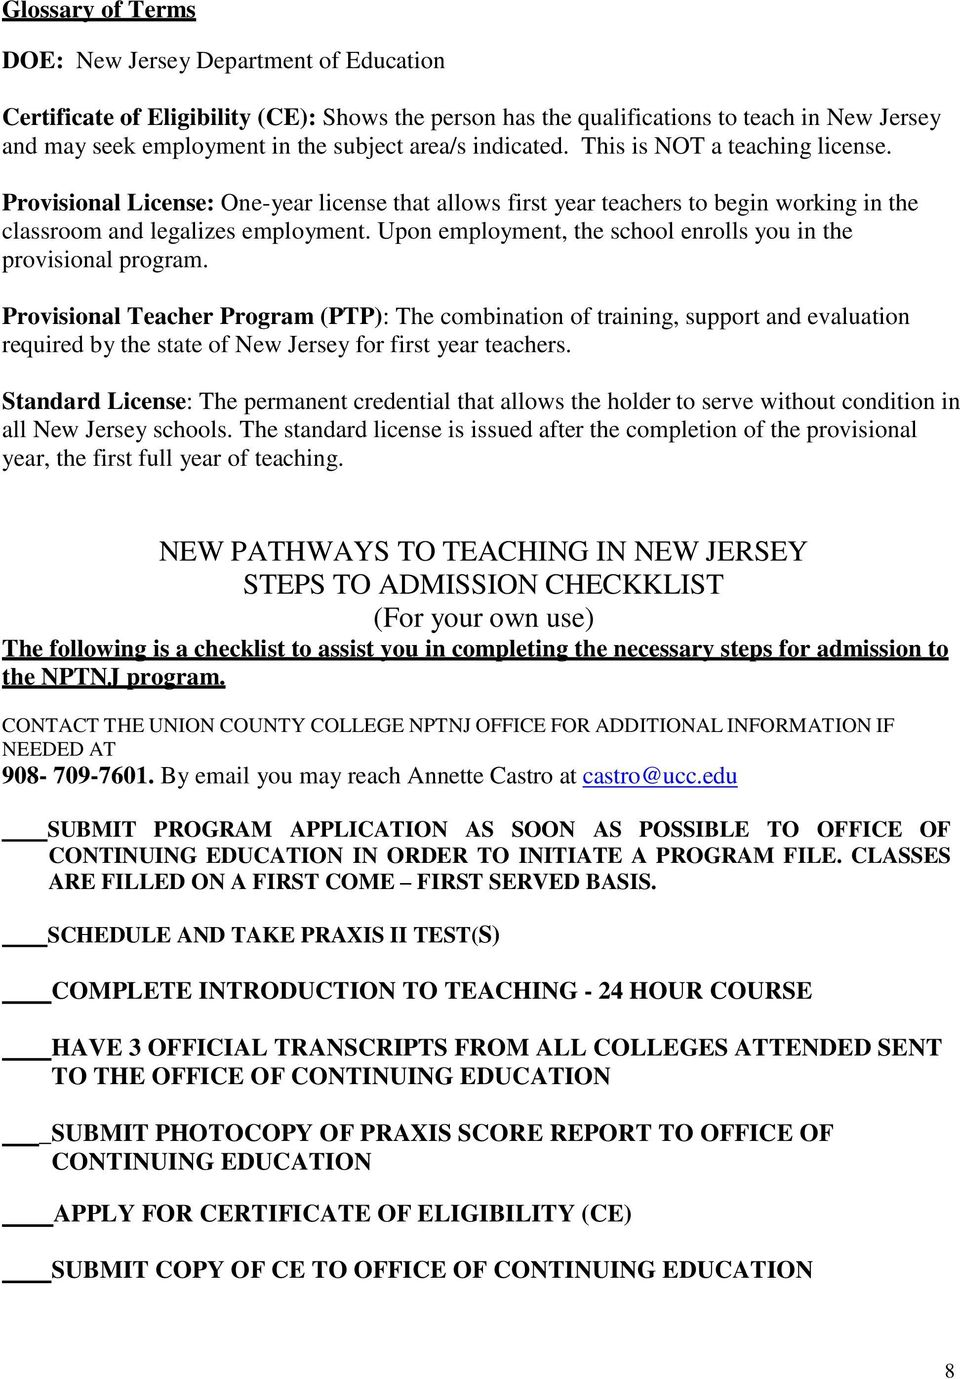 New Pathways To Teaching In New Jersey An Alternate Route To